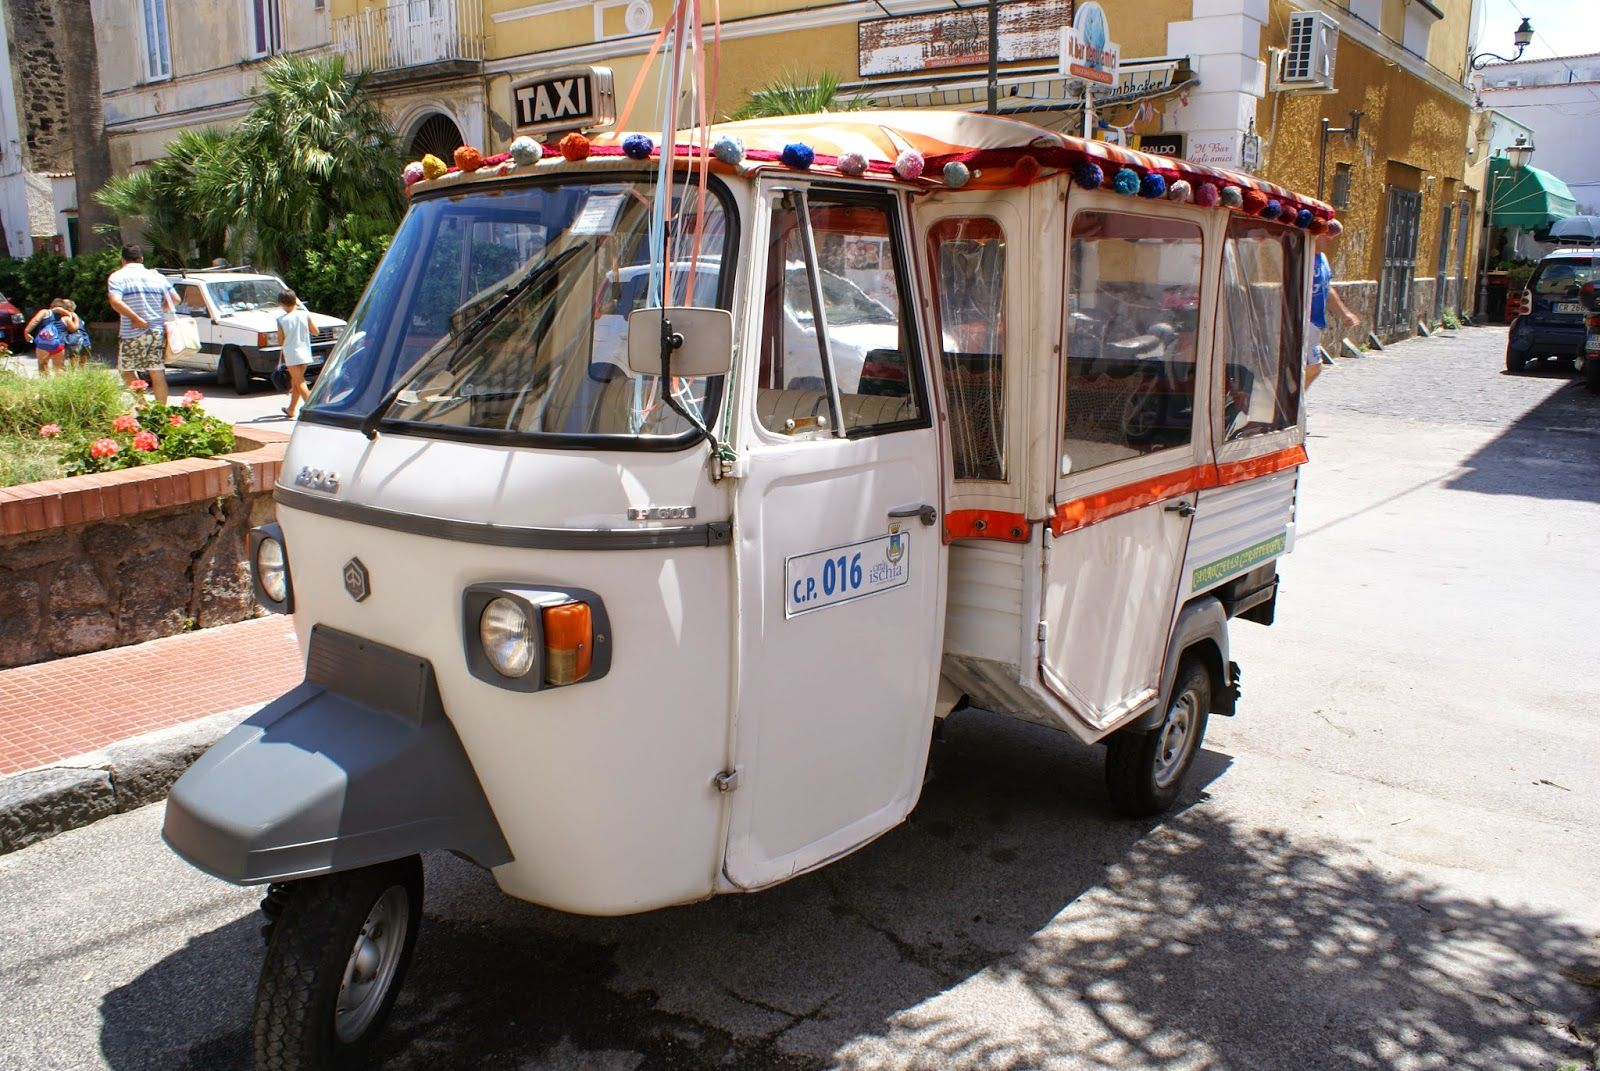 Italy's minicabs or taxi piccolo